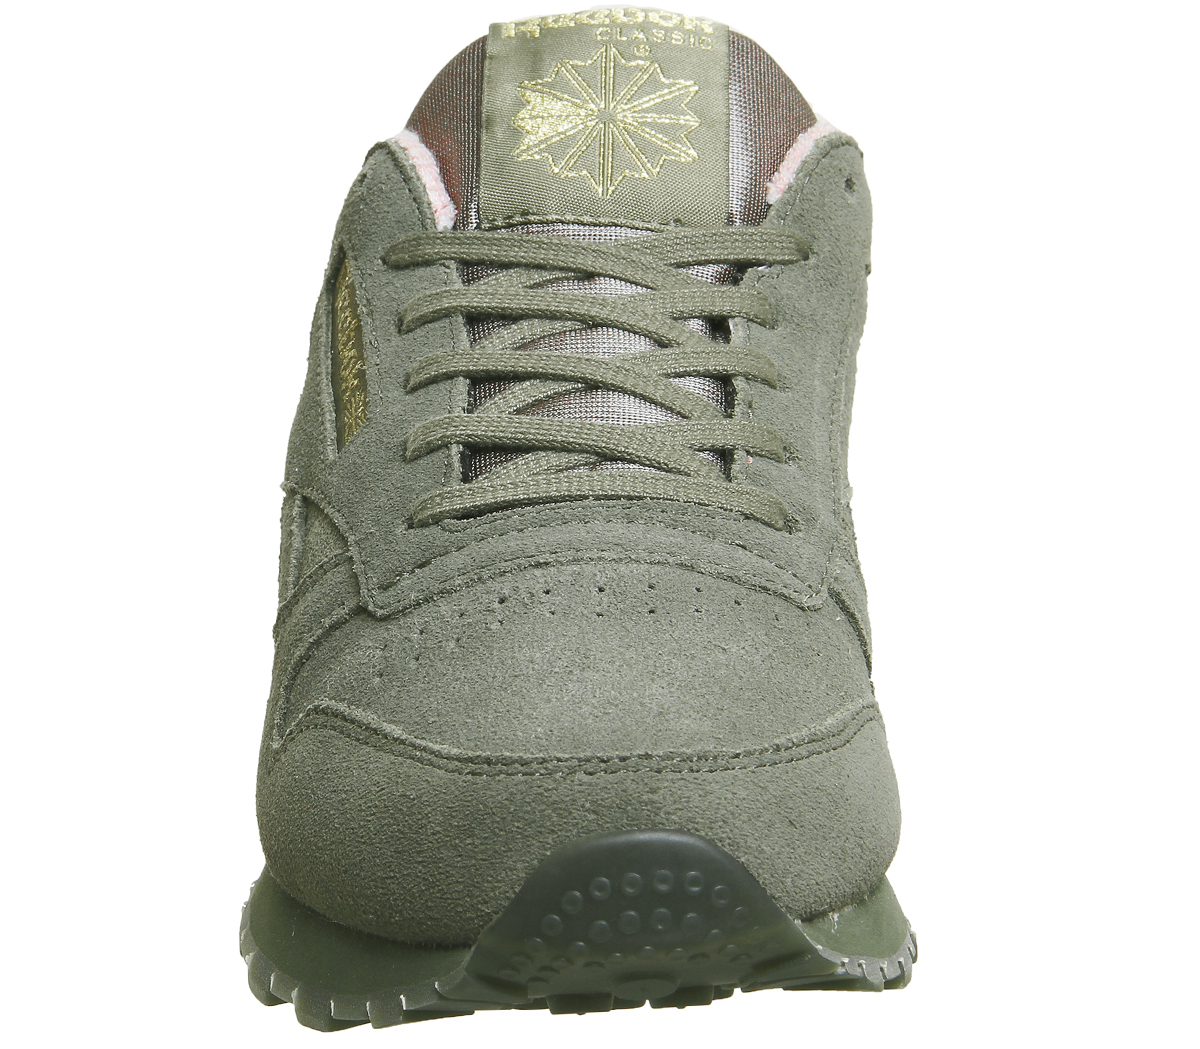 2decf29c3de Womens Reebok Cl Leather Trainers Hunter Green Pink Trainers Shoes ...